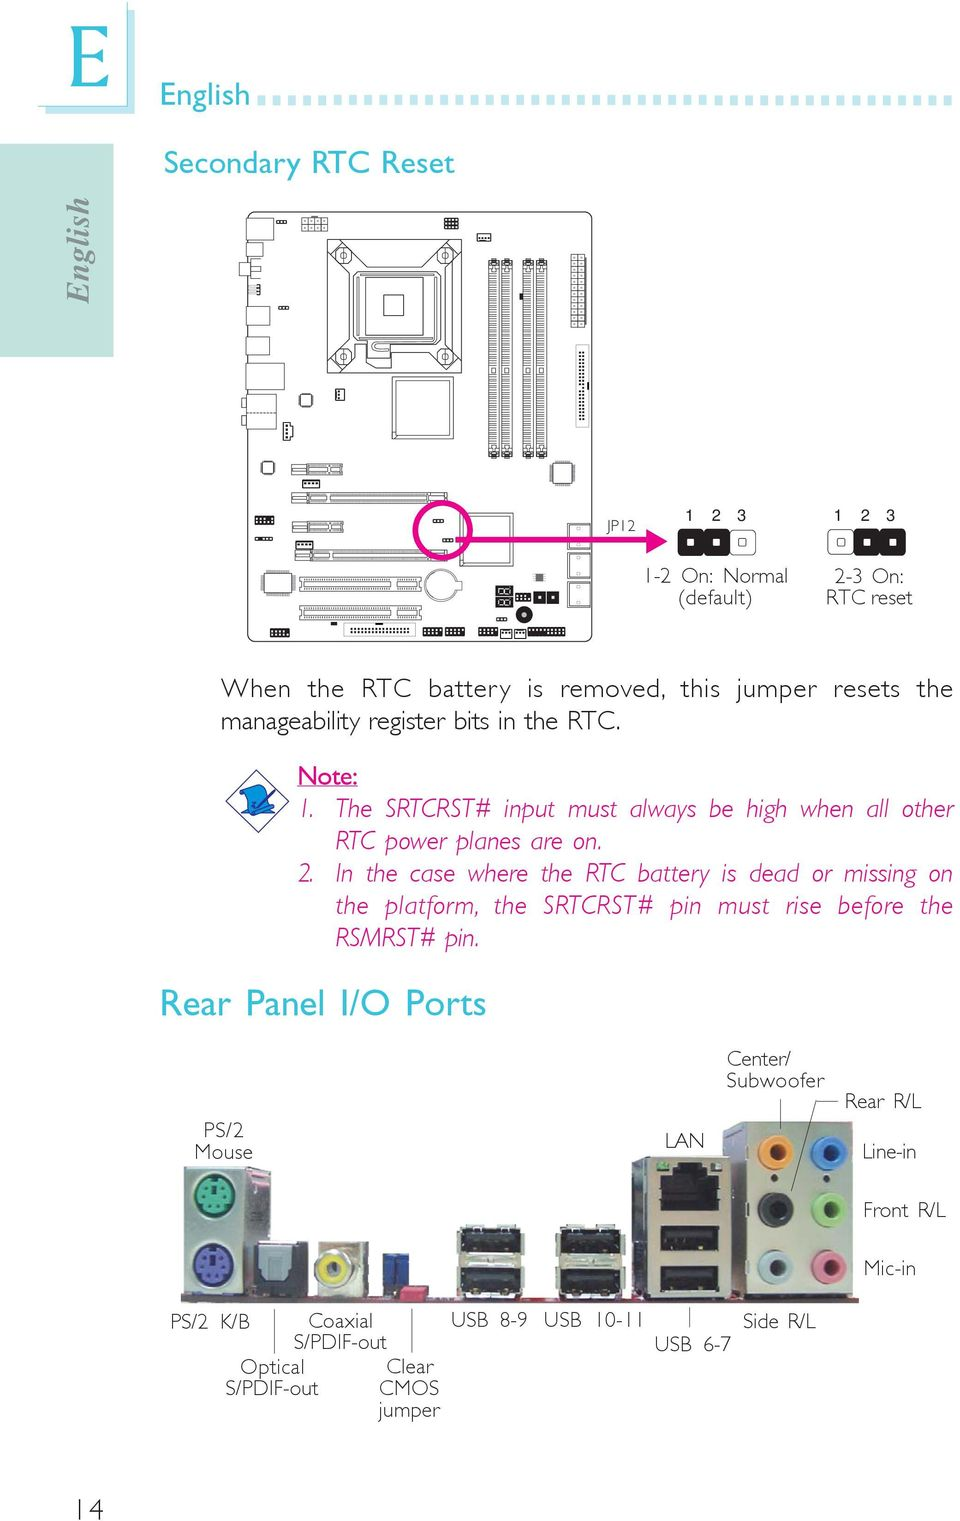 In the case where the RTC battery is dead or missing on the platform, the SRTCRST# pin must rise before the RSMRST# pin.